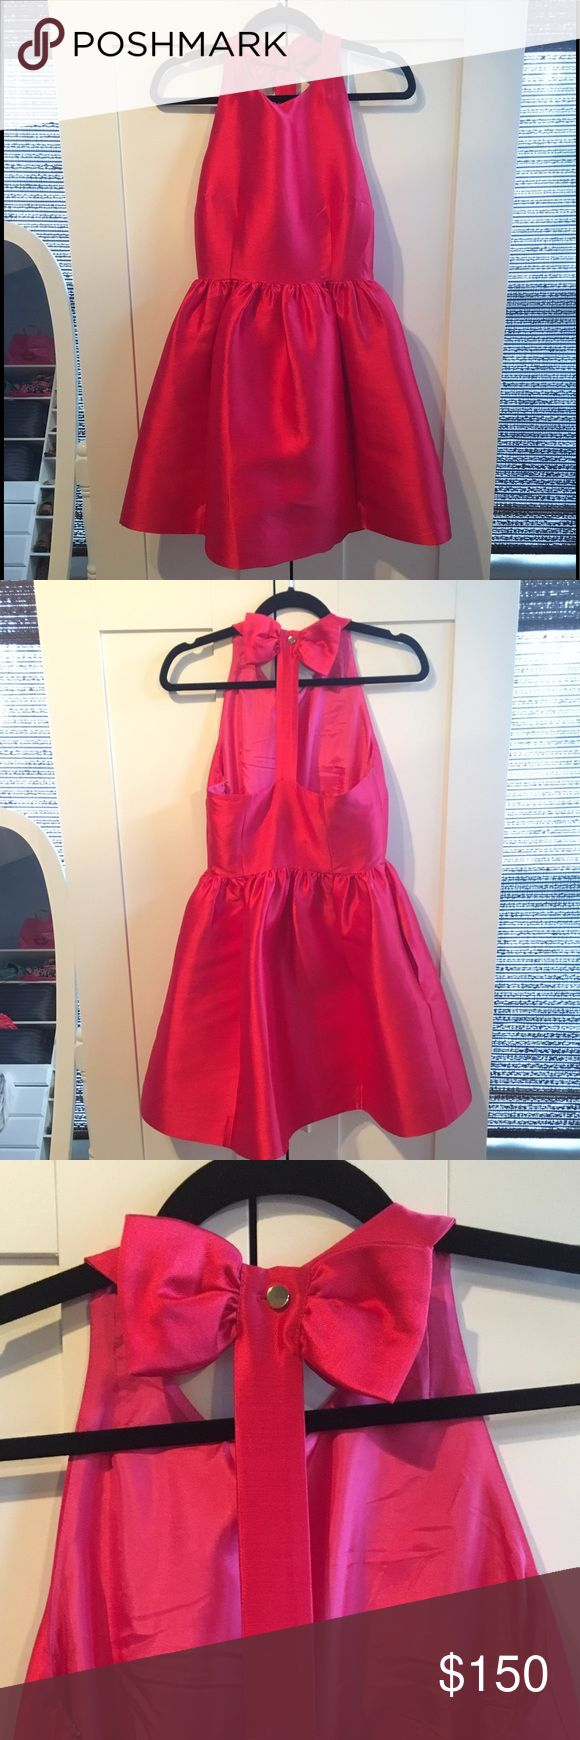 Kate Spade ♠️Aladdin Pink Bow Back Dress 🎀 NWT Kate Spade Aladdin Pink bow back fit & flare dress. Great fit & structure. Looks great on and is definitely a statement dress! Size 2. No trades. kate spade Dresses Mini